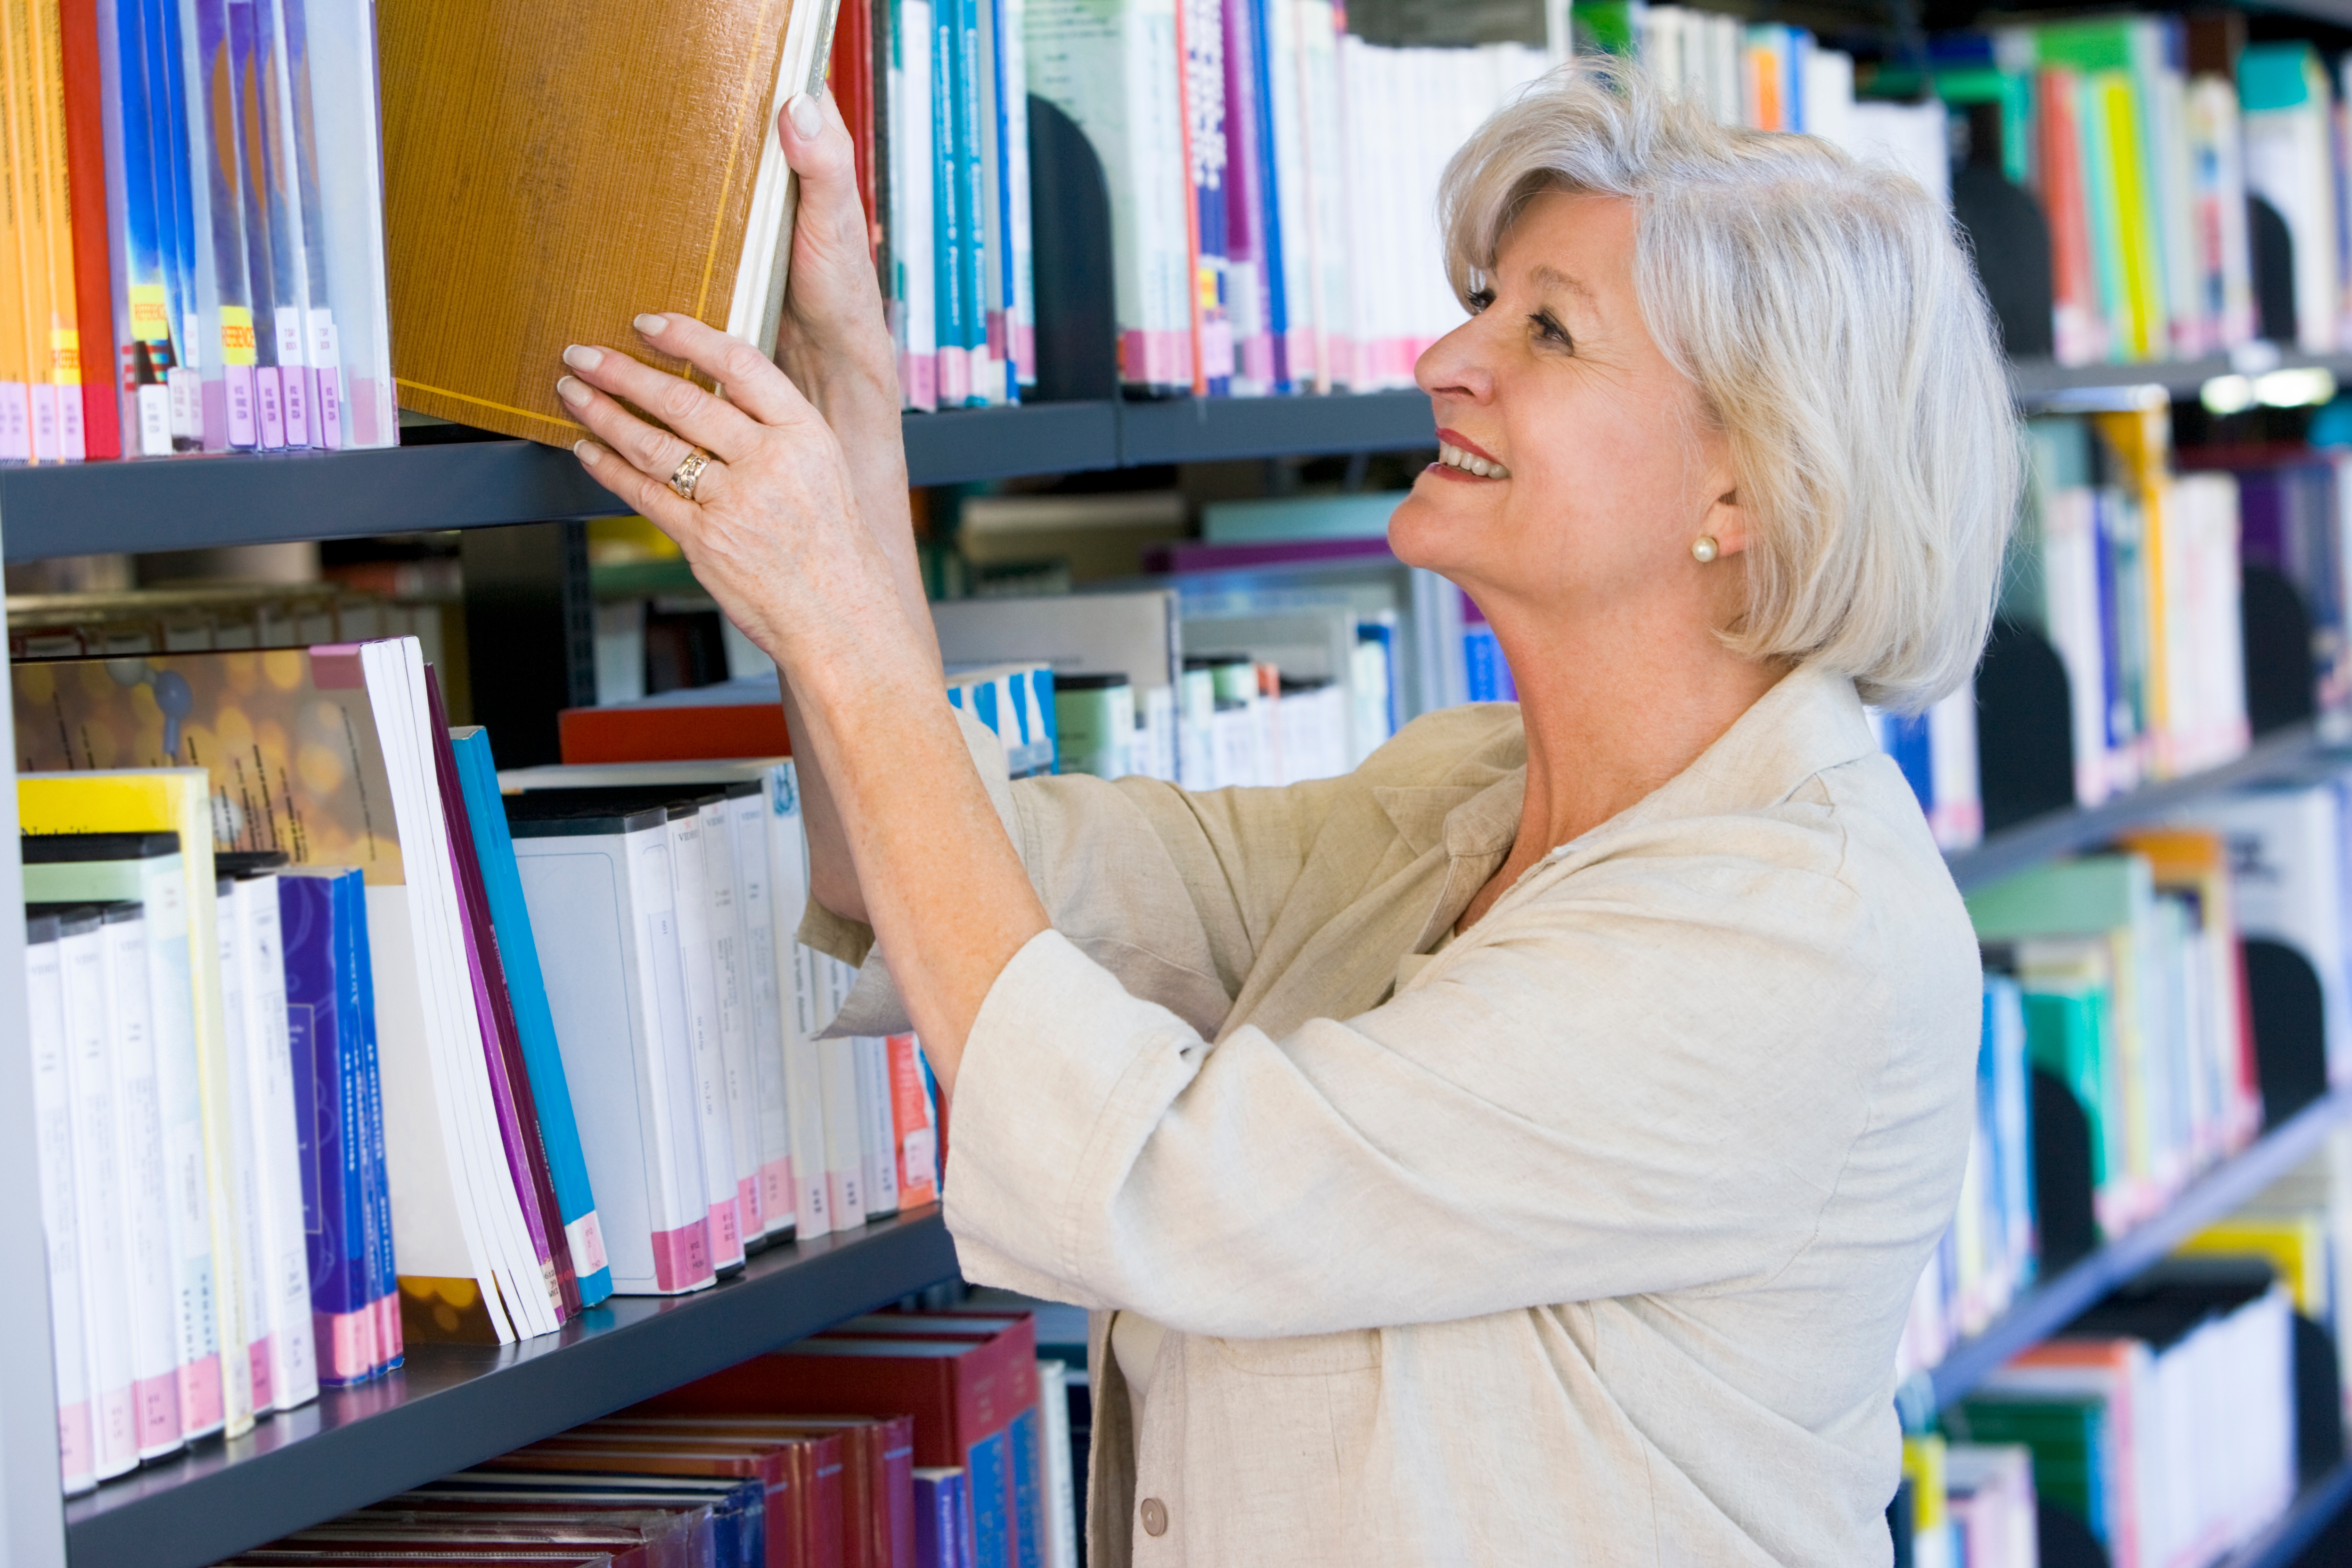 senior-woman-pulling-a-library-book-off-shelf_rKwlMCHo